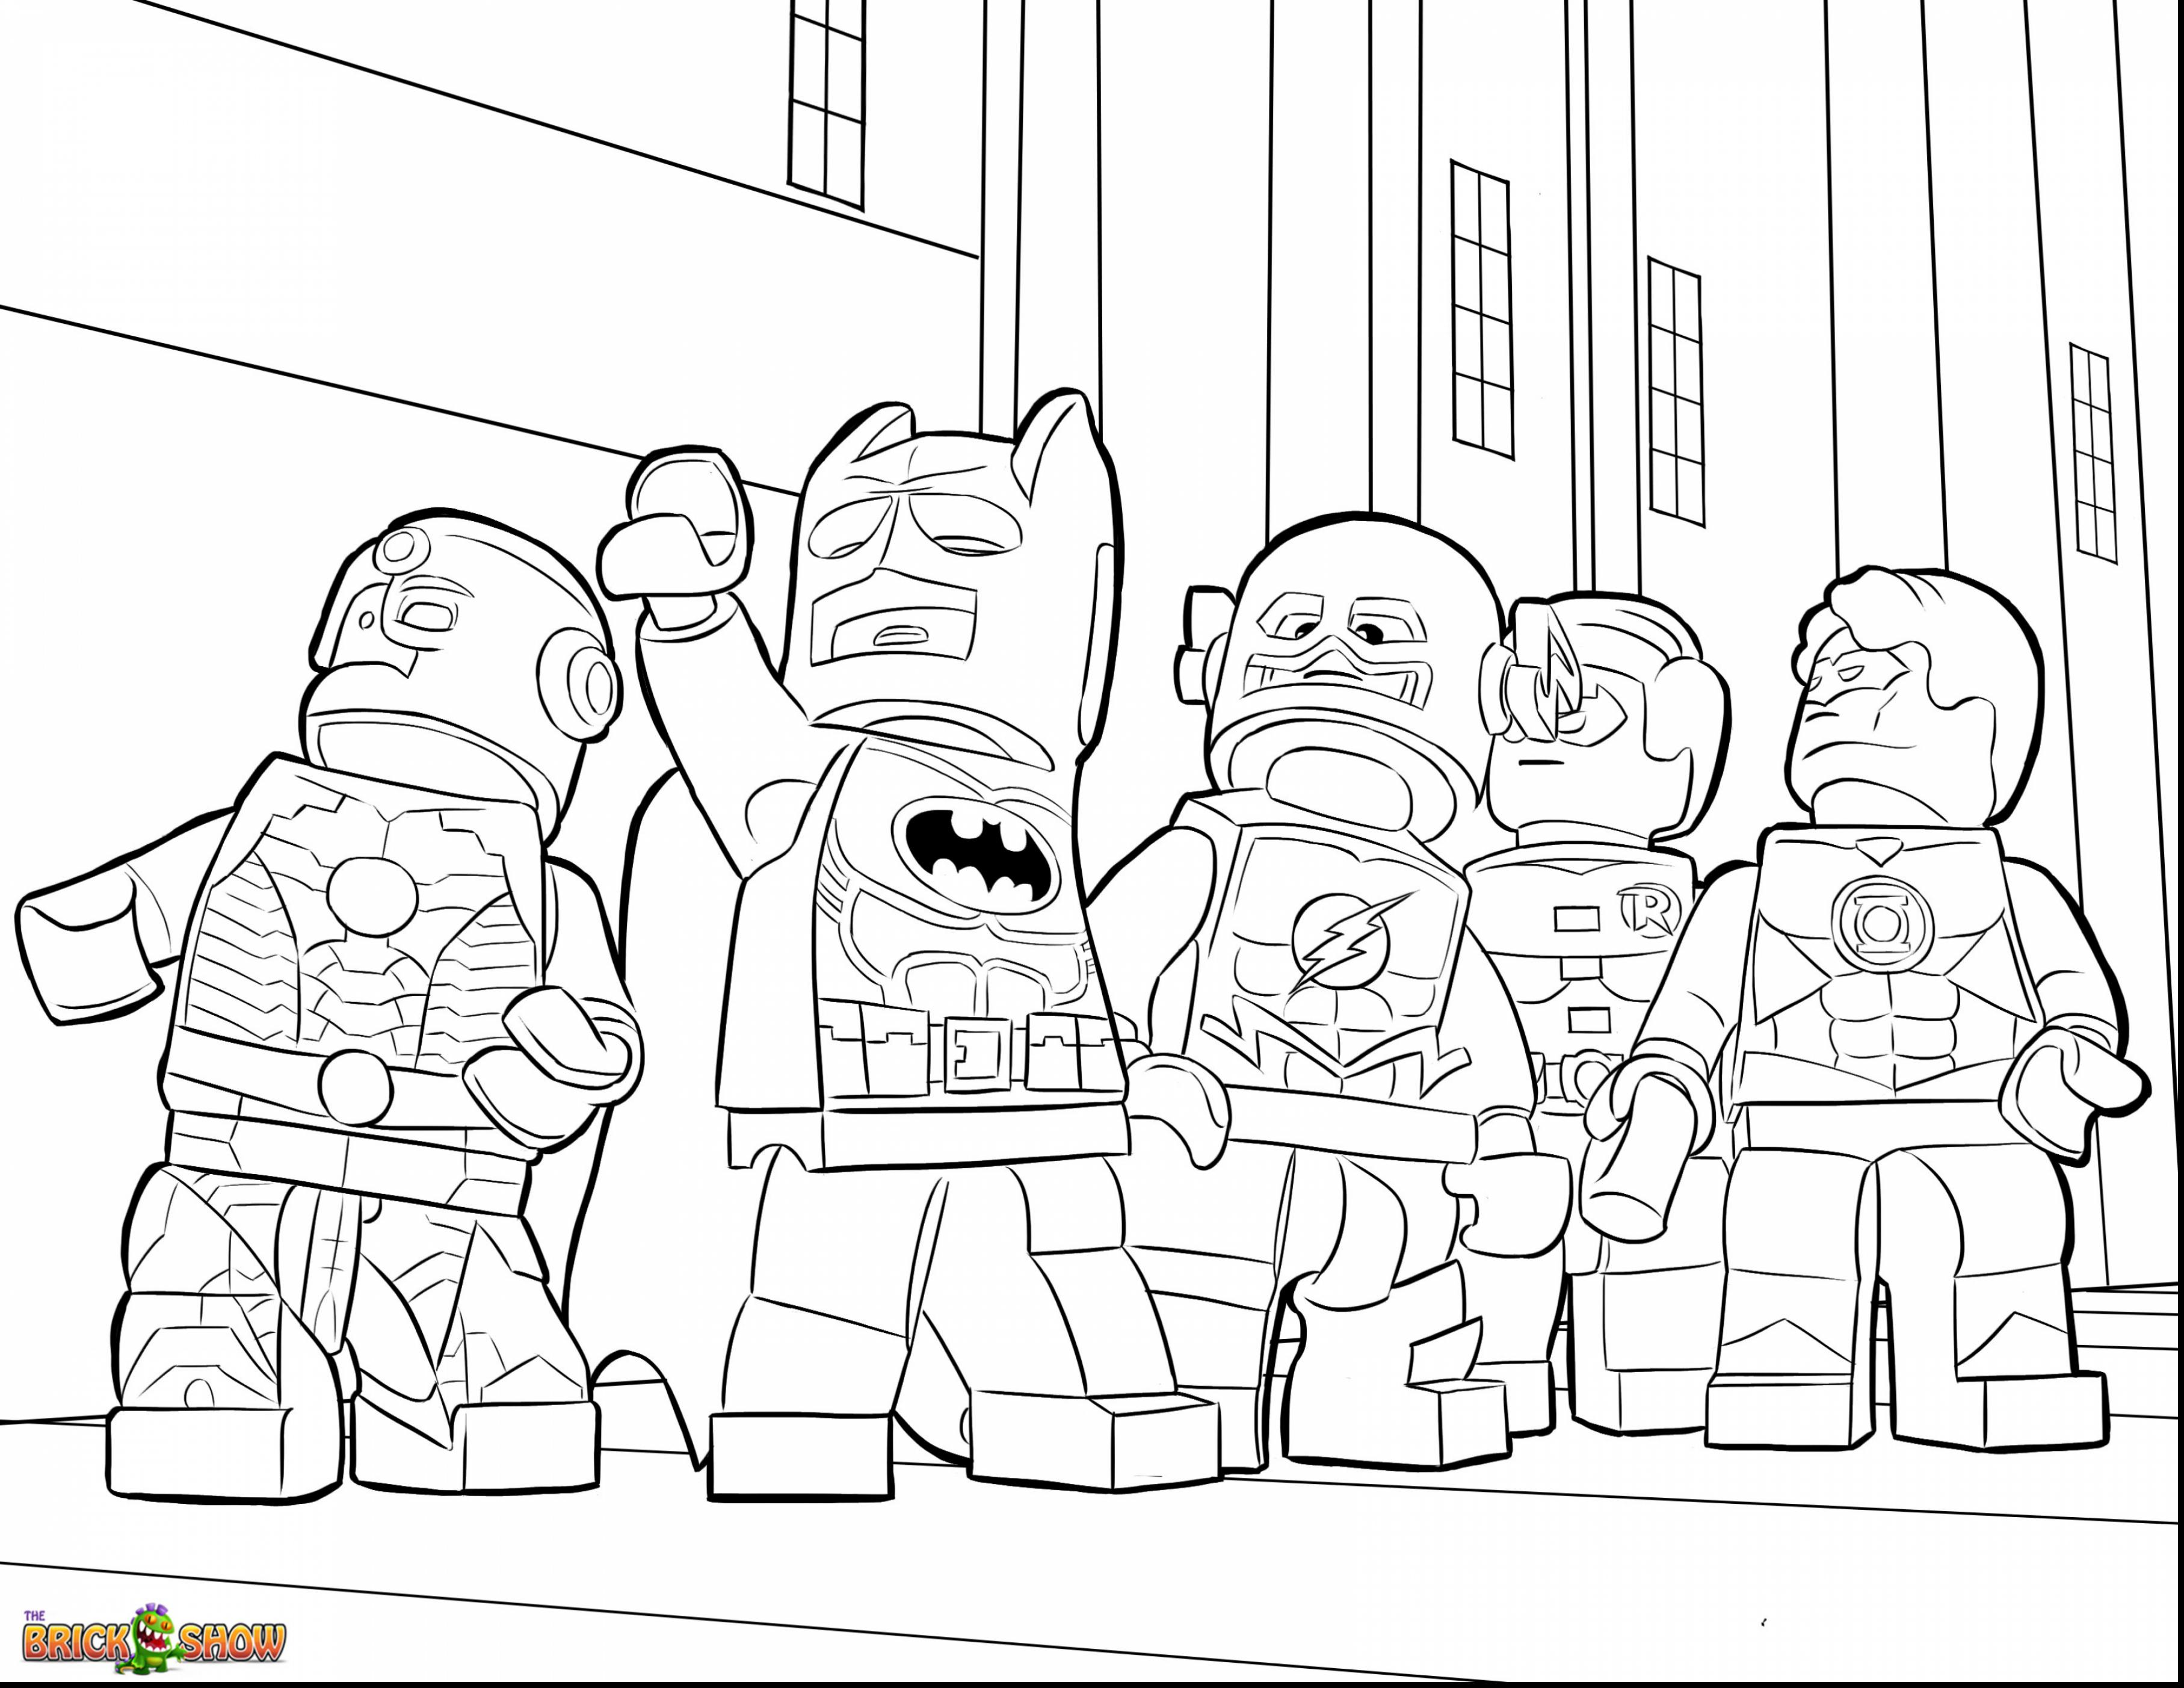 3630x2805 Ninjago Coloring Pages For Christmas